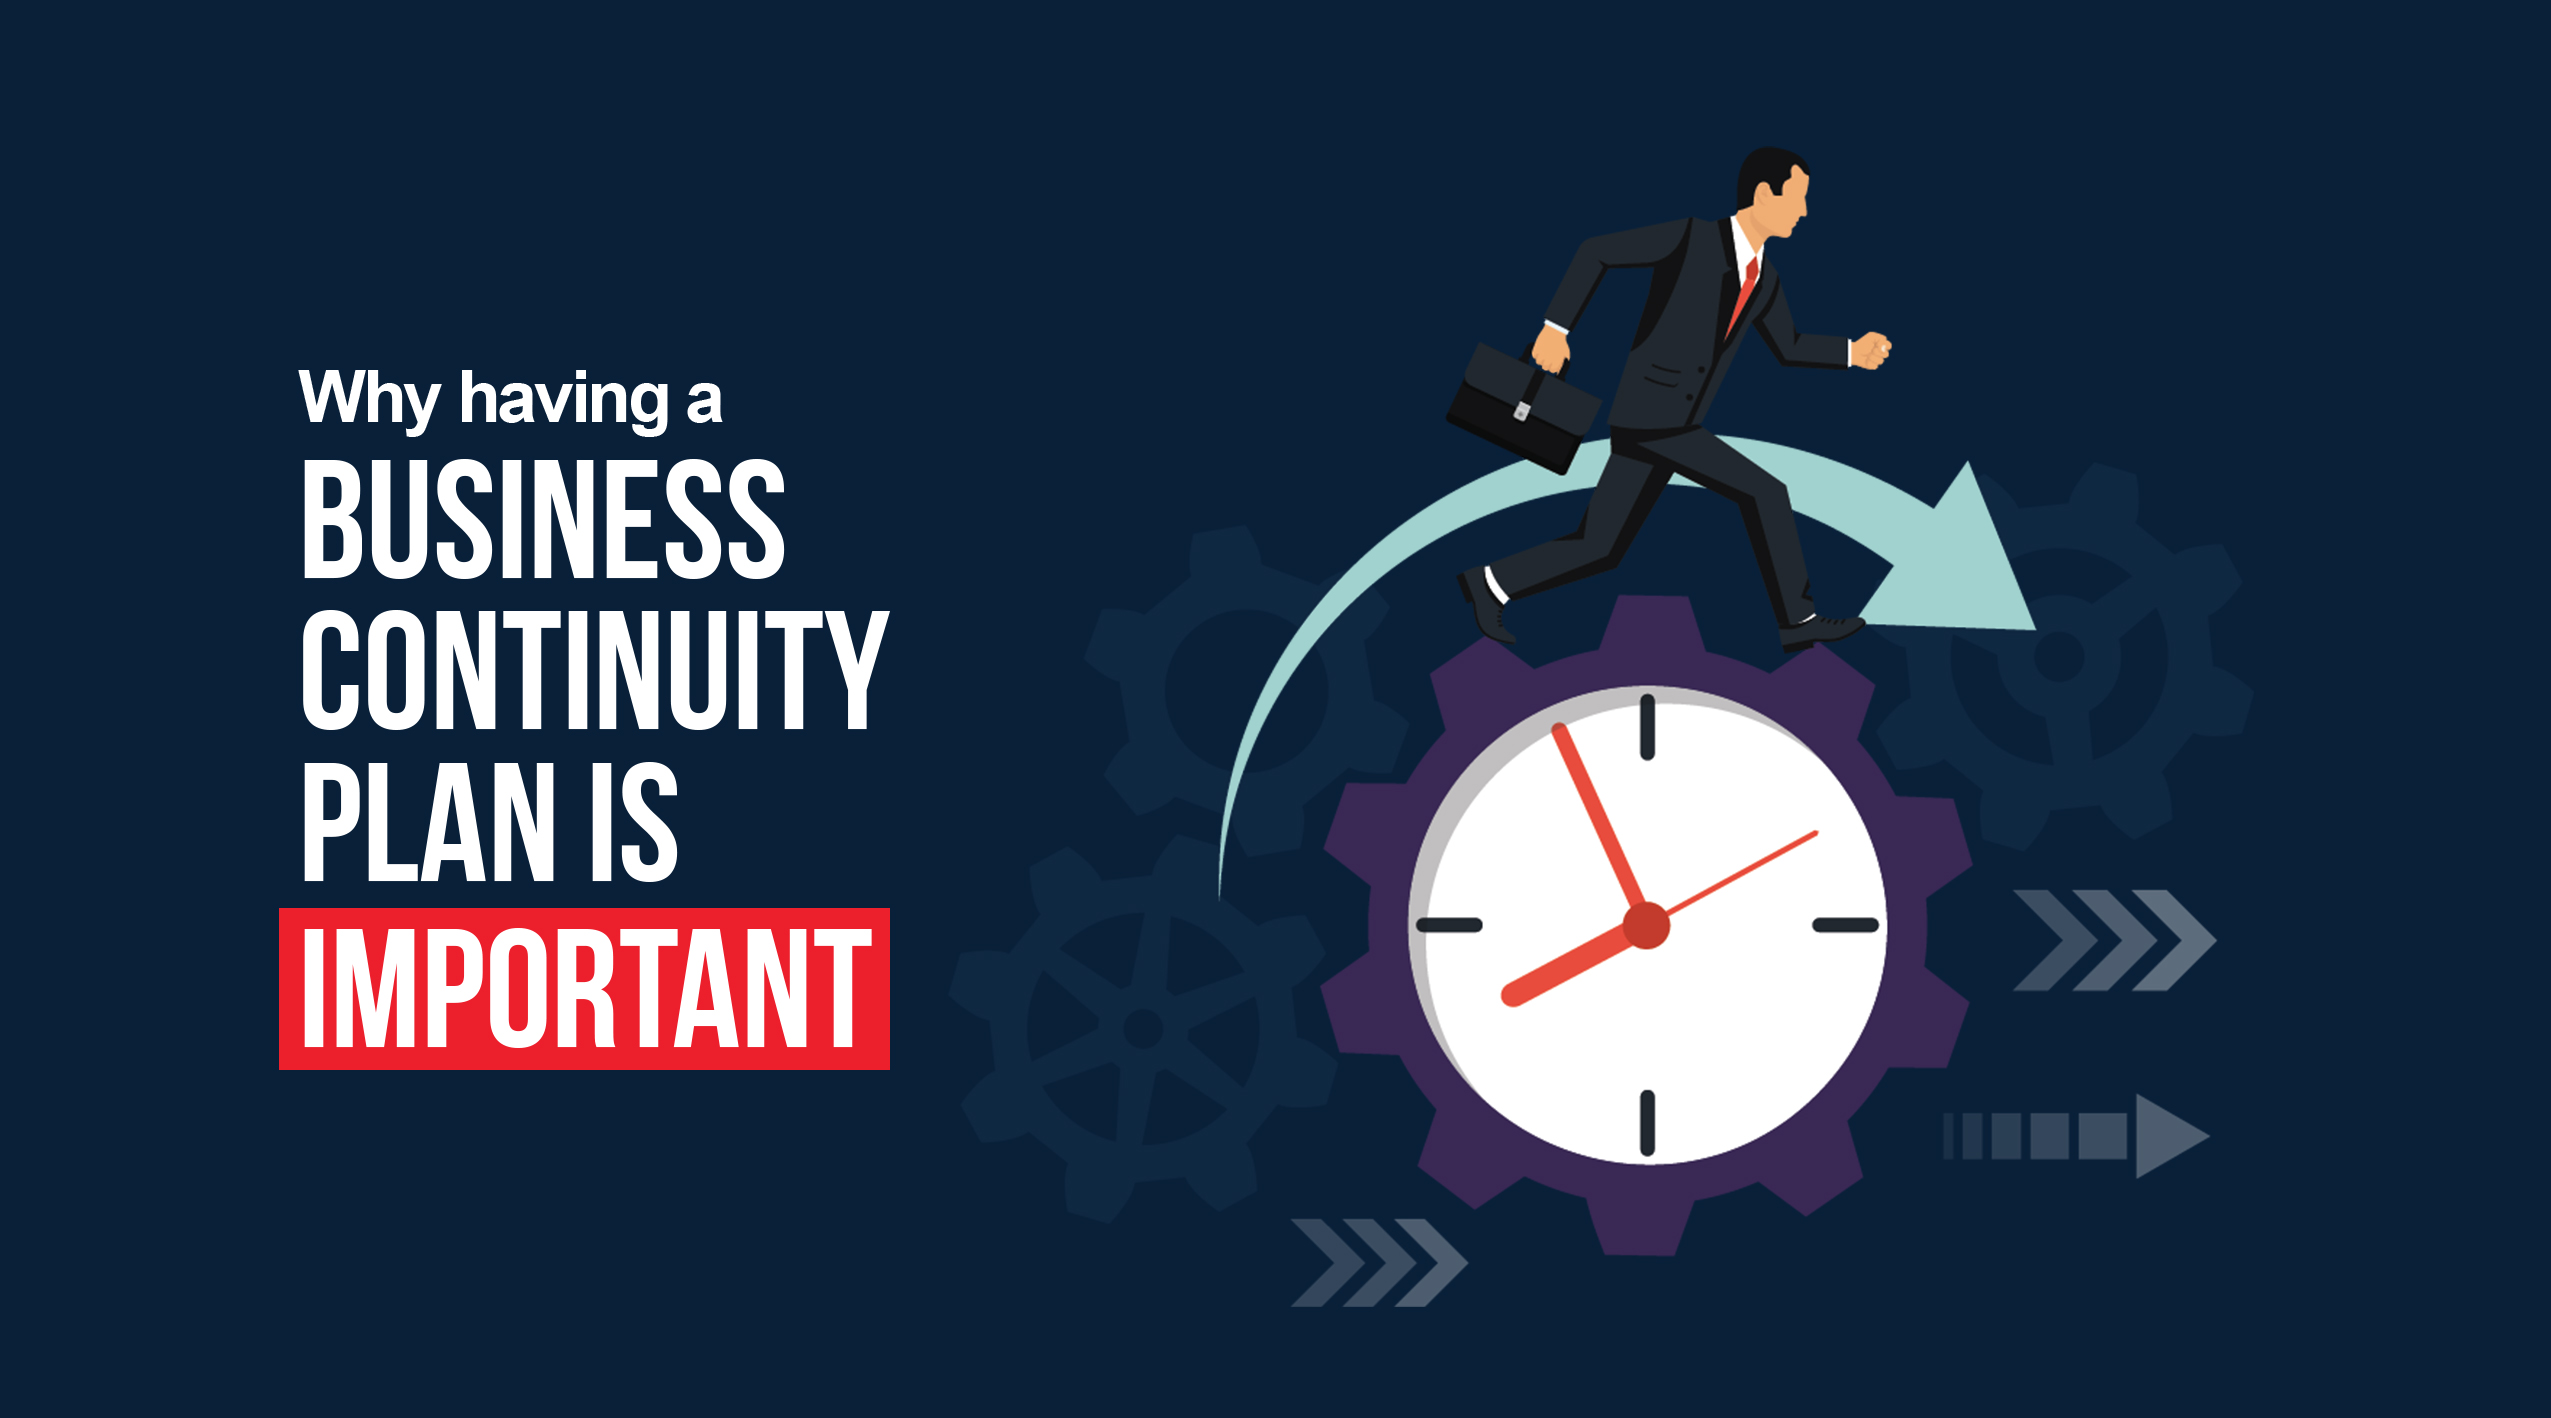 Importance of a Business Continuity Plan